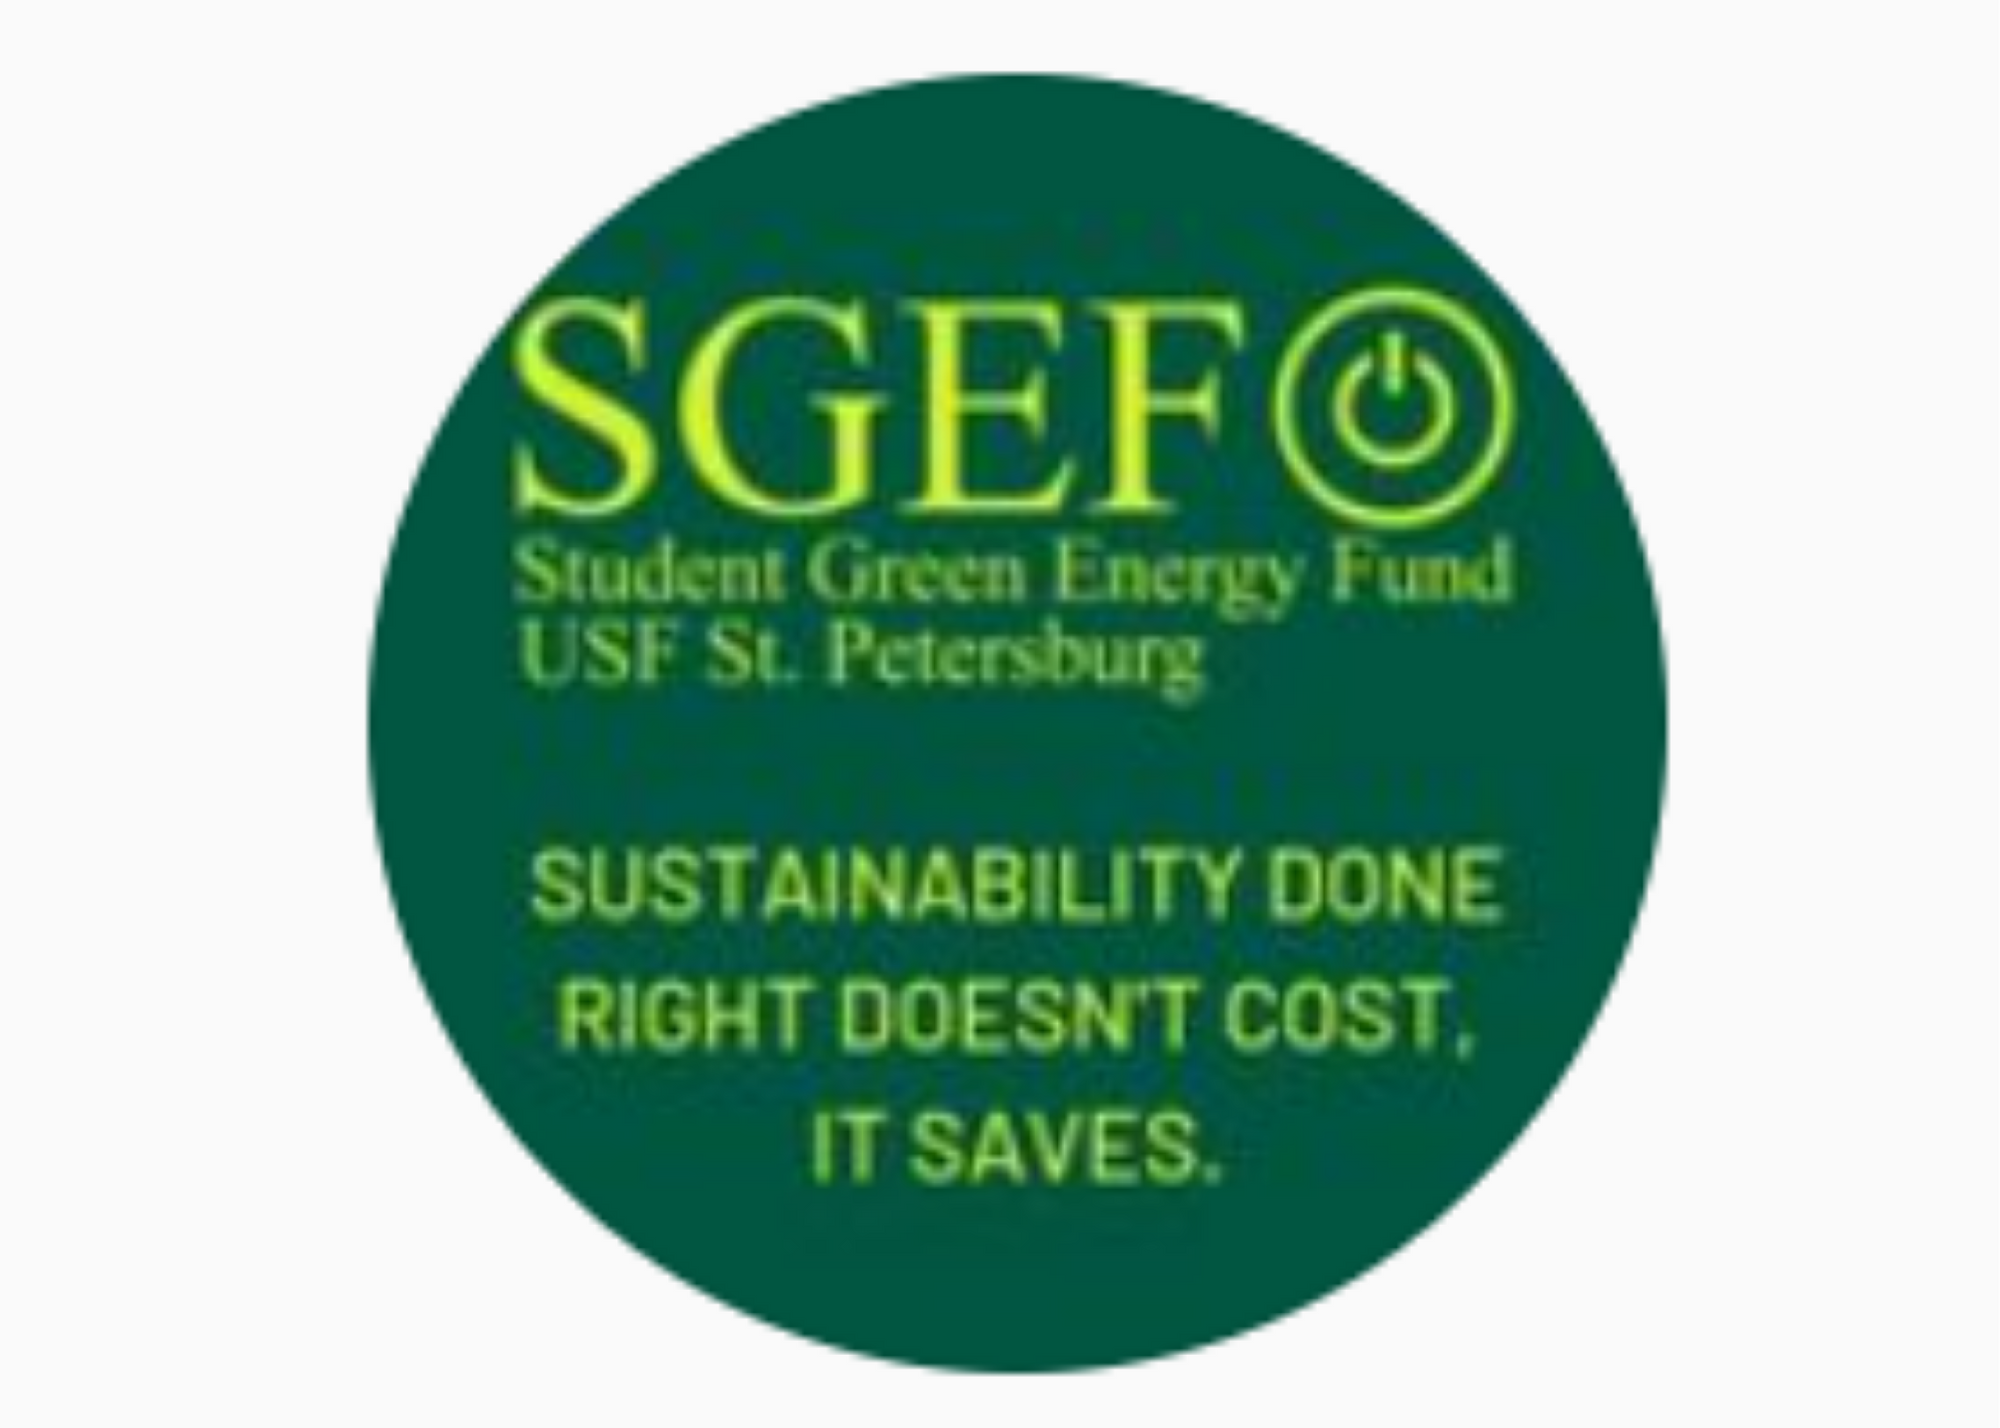 Student Green Energy Fund (SGEF)